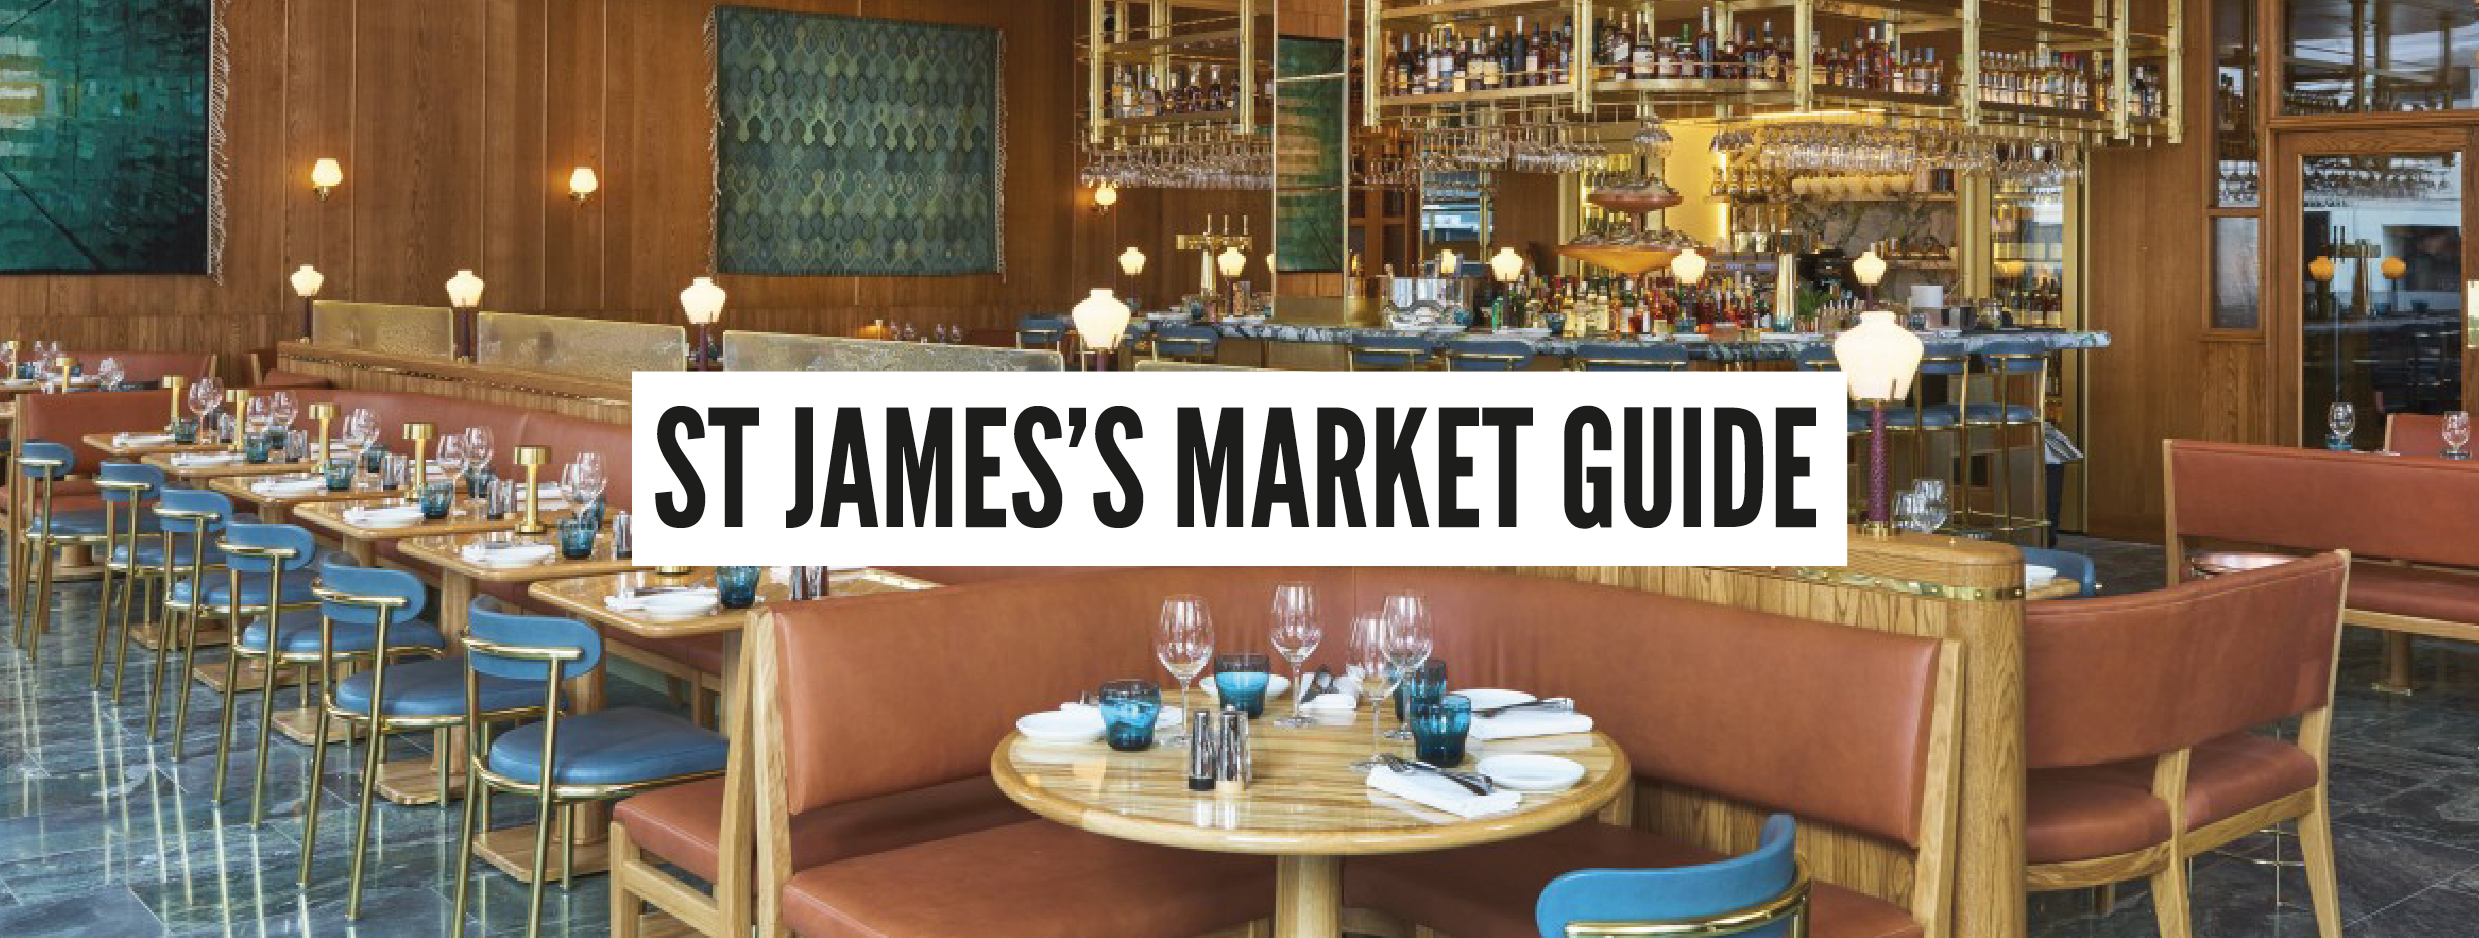 London Neighbourhood Guides - St James's Market